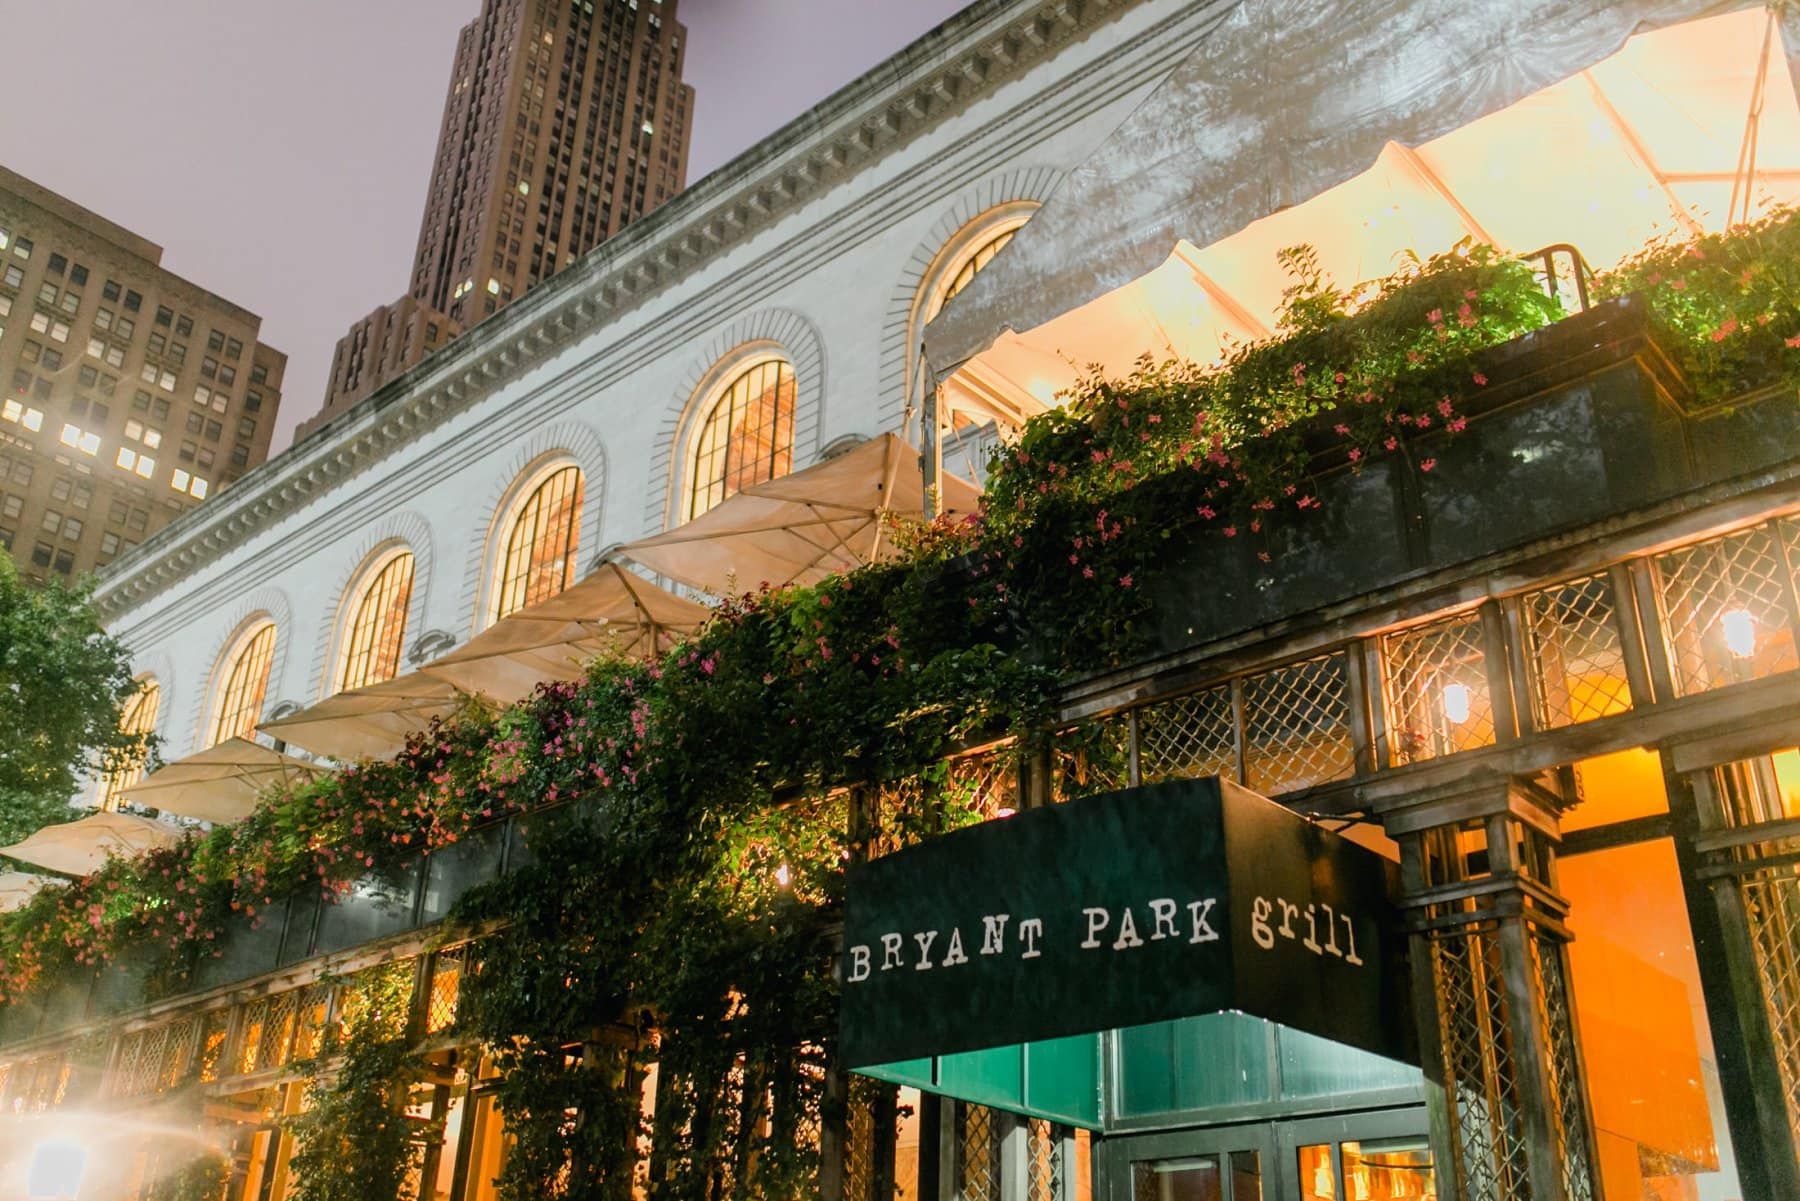 Bryant Park Grill Manhattan New York City at night in the rain